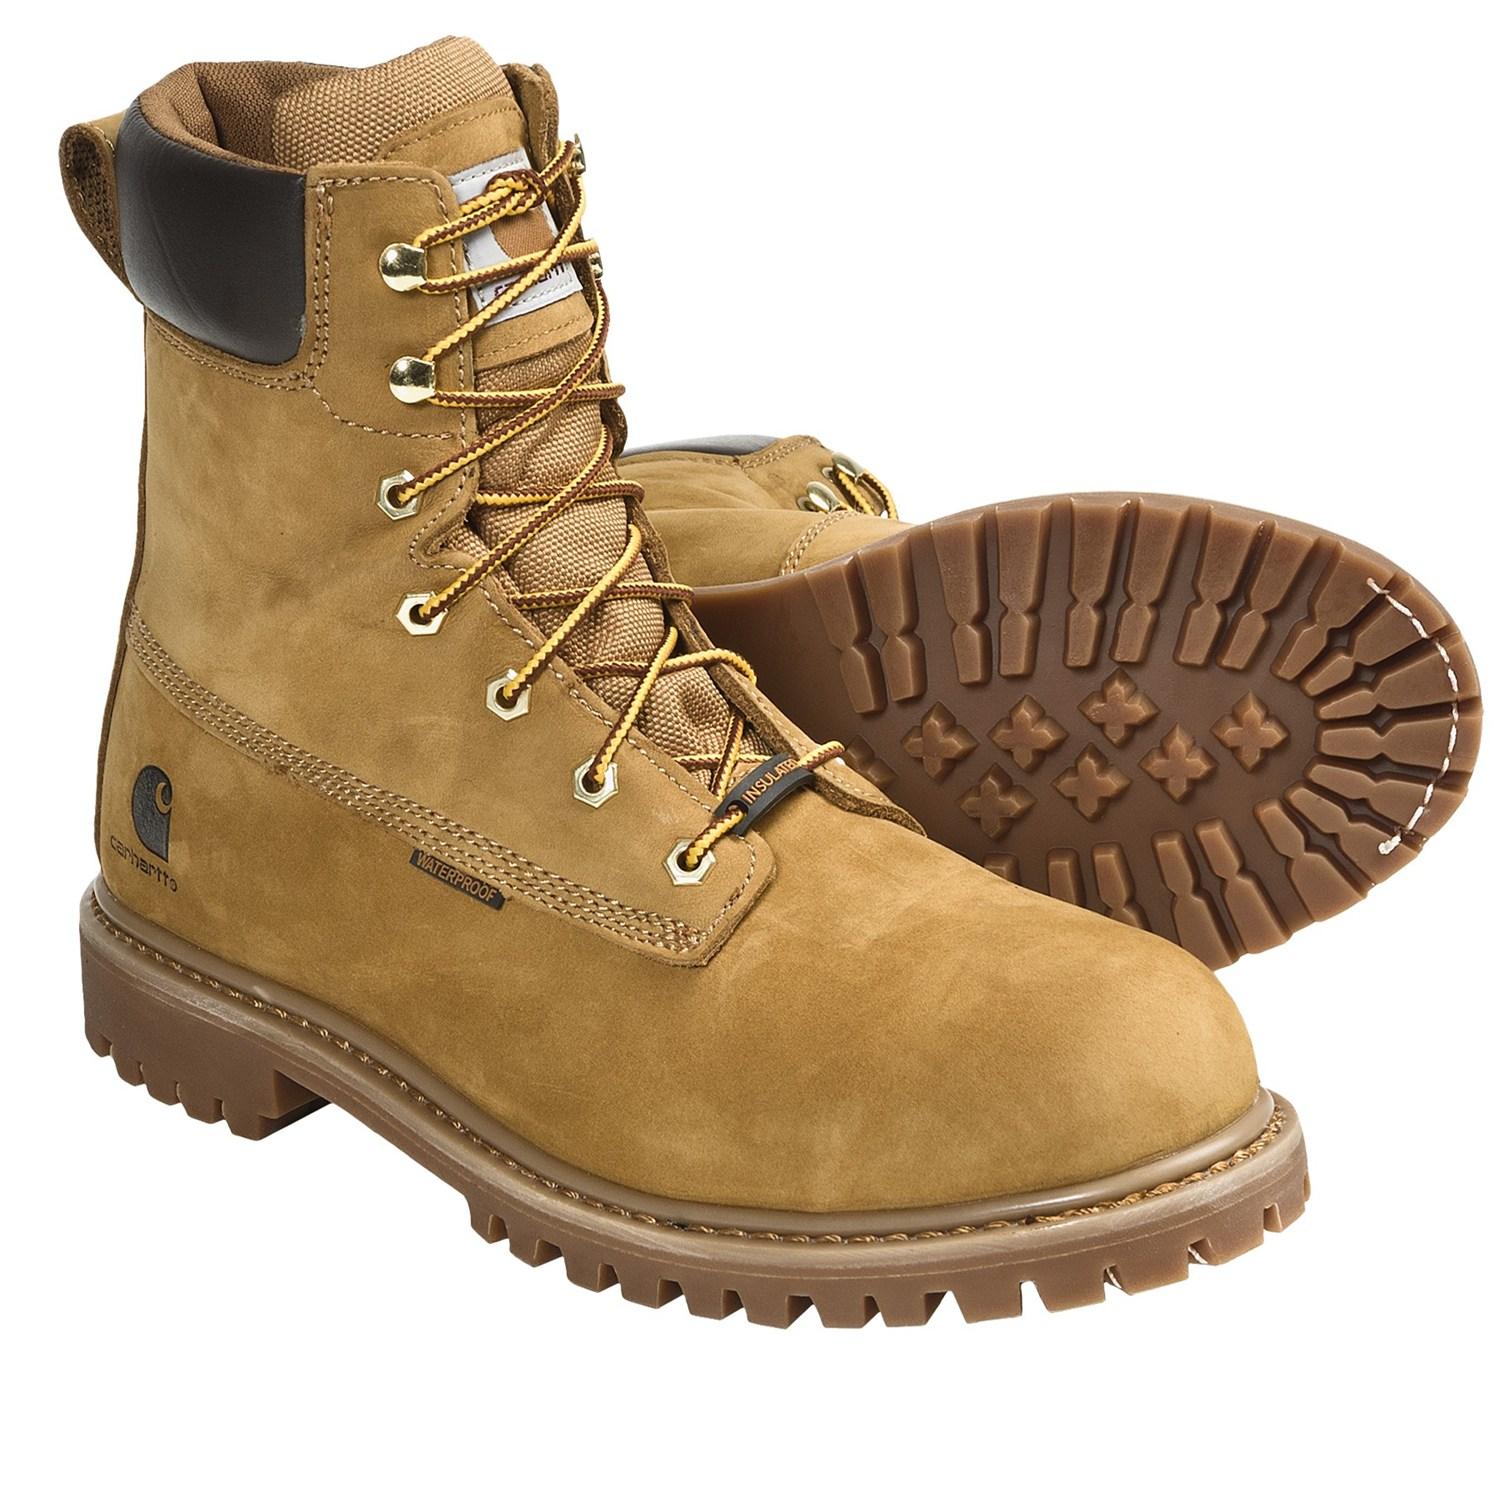 Winter Work Boots For Men DXJ98aT4